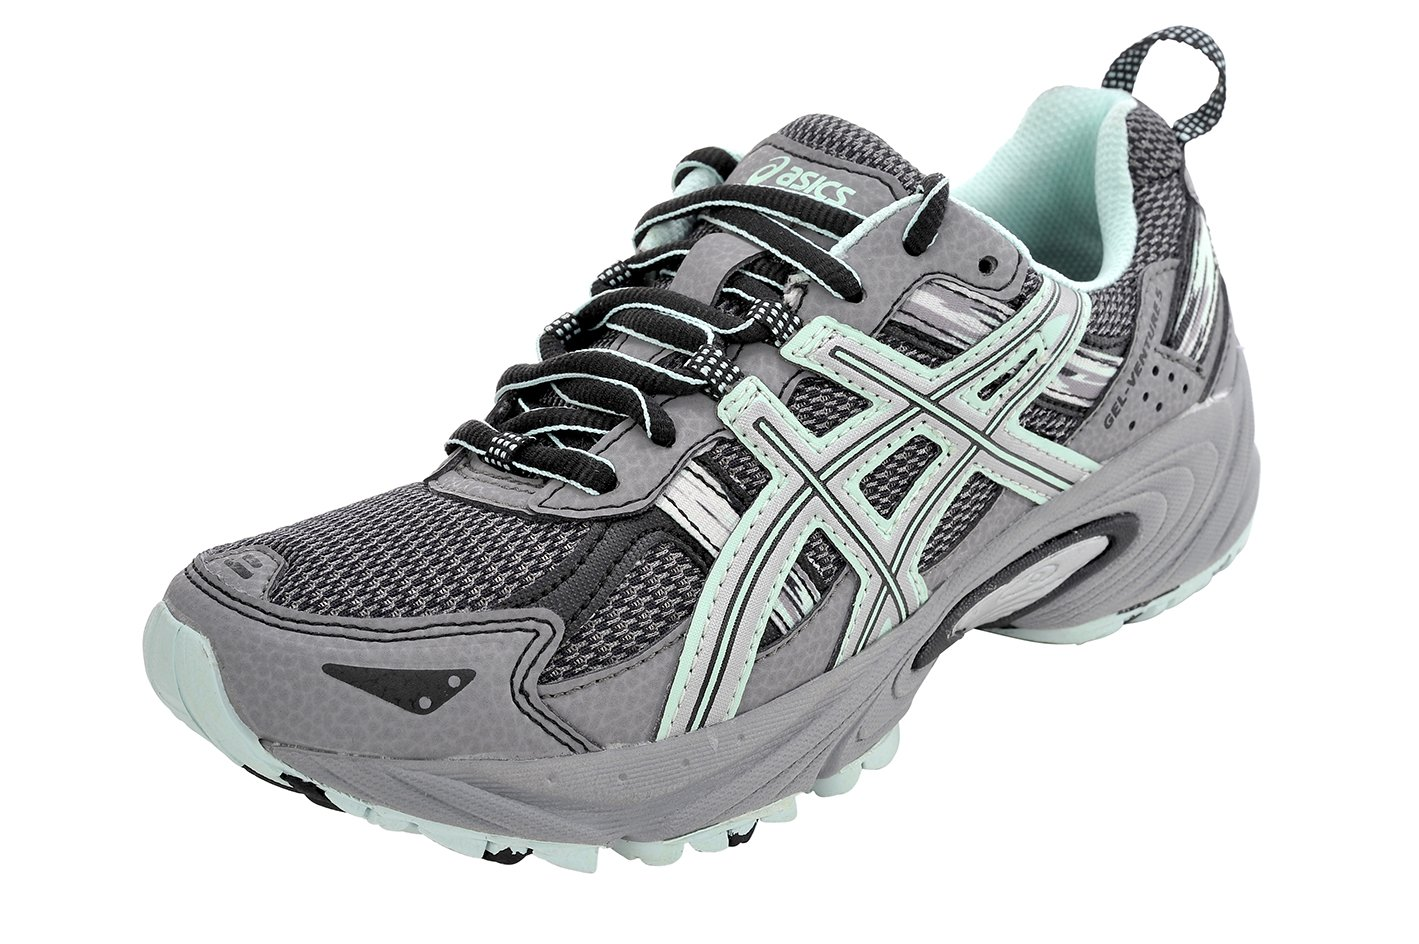 ASICS Women's Gel-Venture 5 Running Shoe (9.5 B(M) US, Frost Gray/Silver/Soothing Sea)